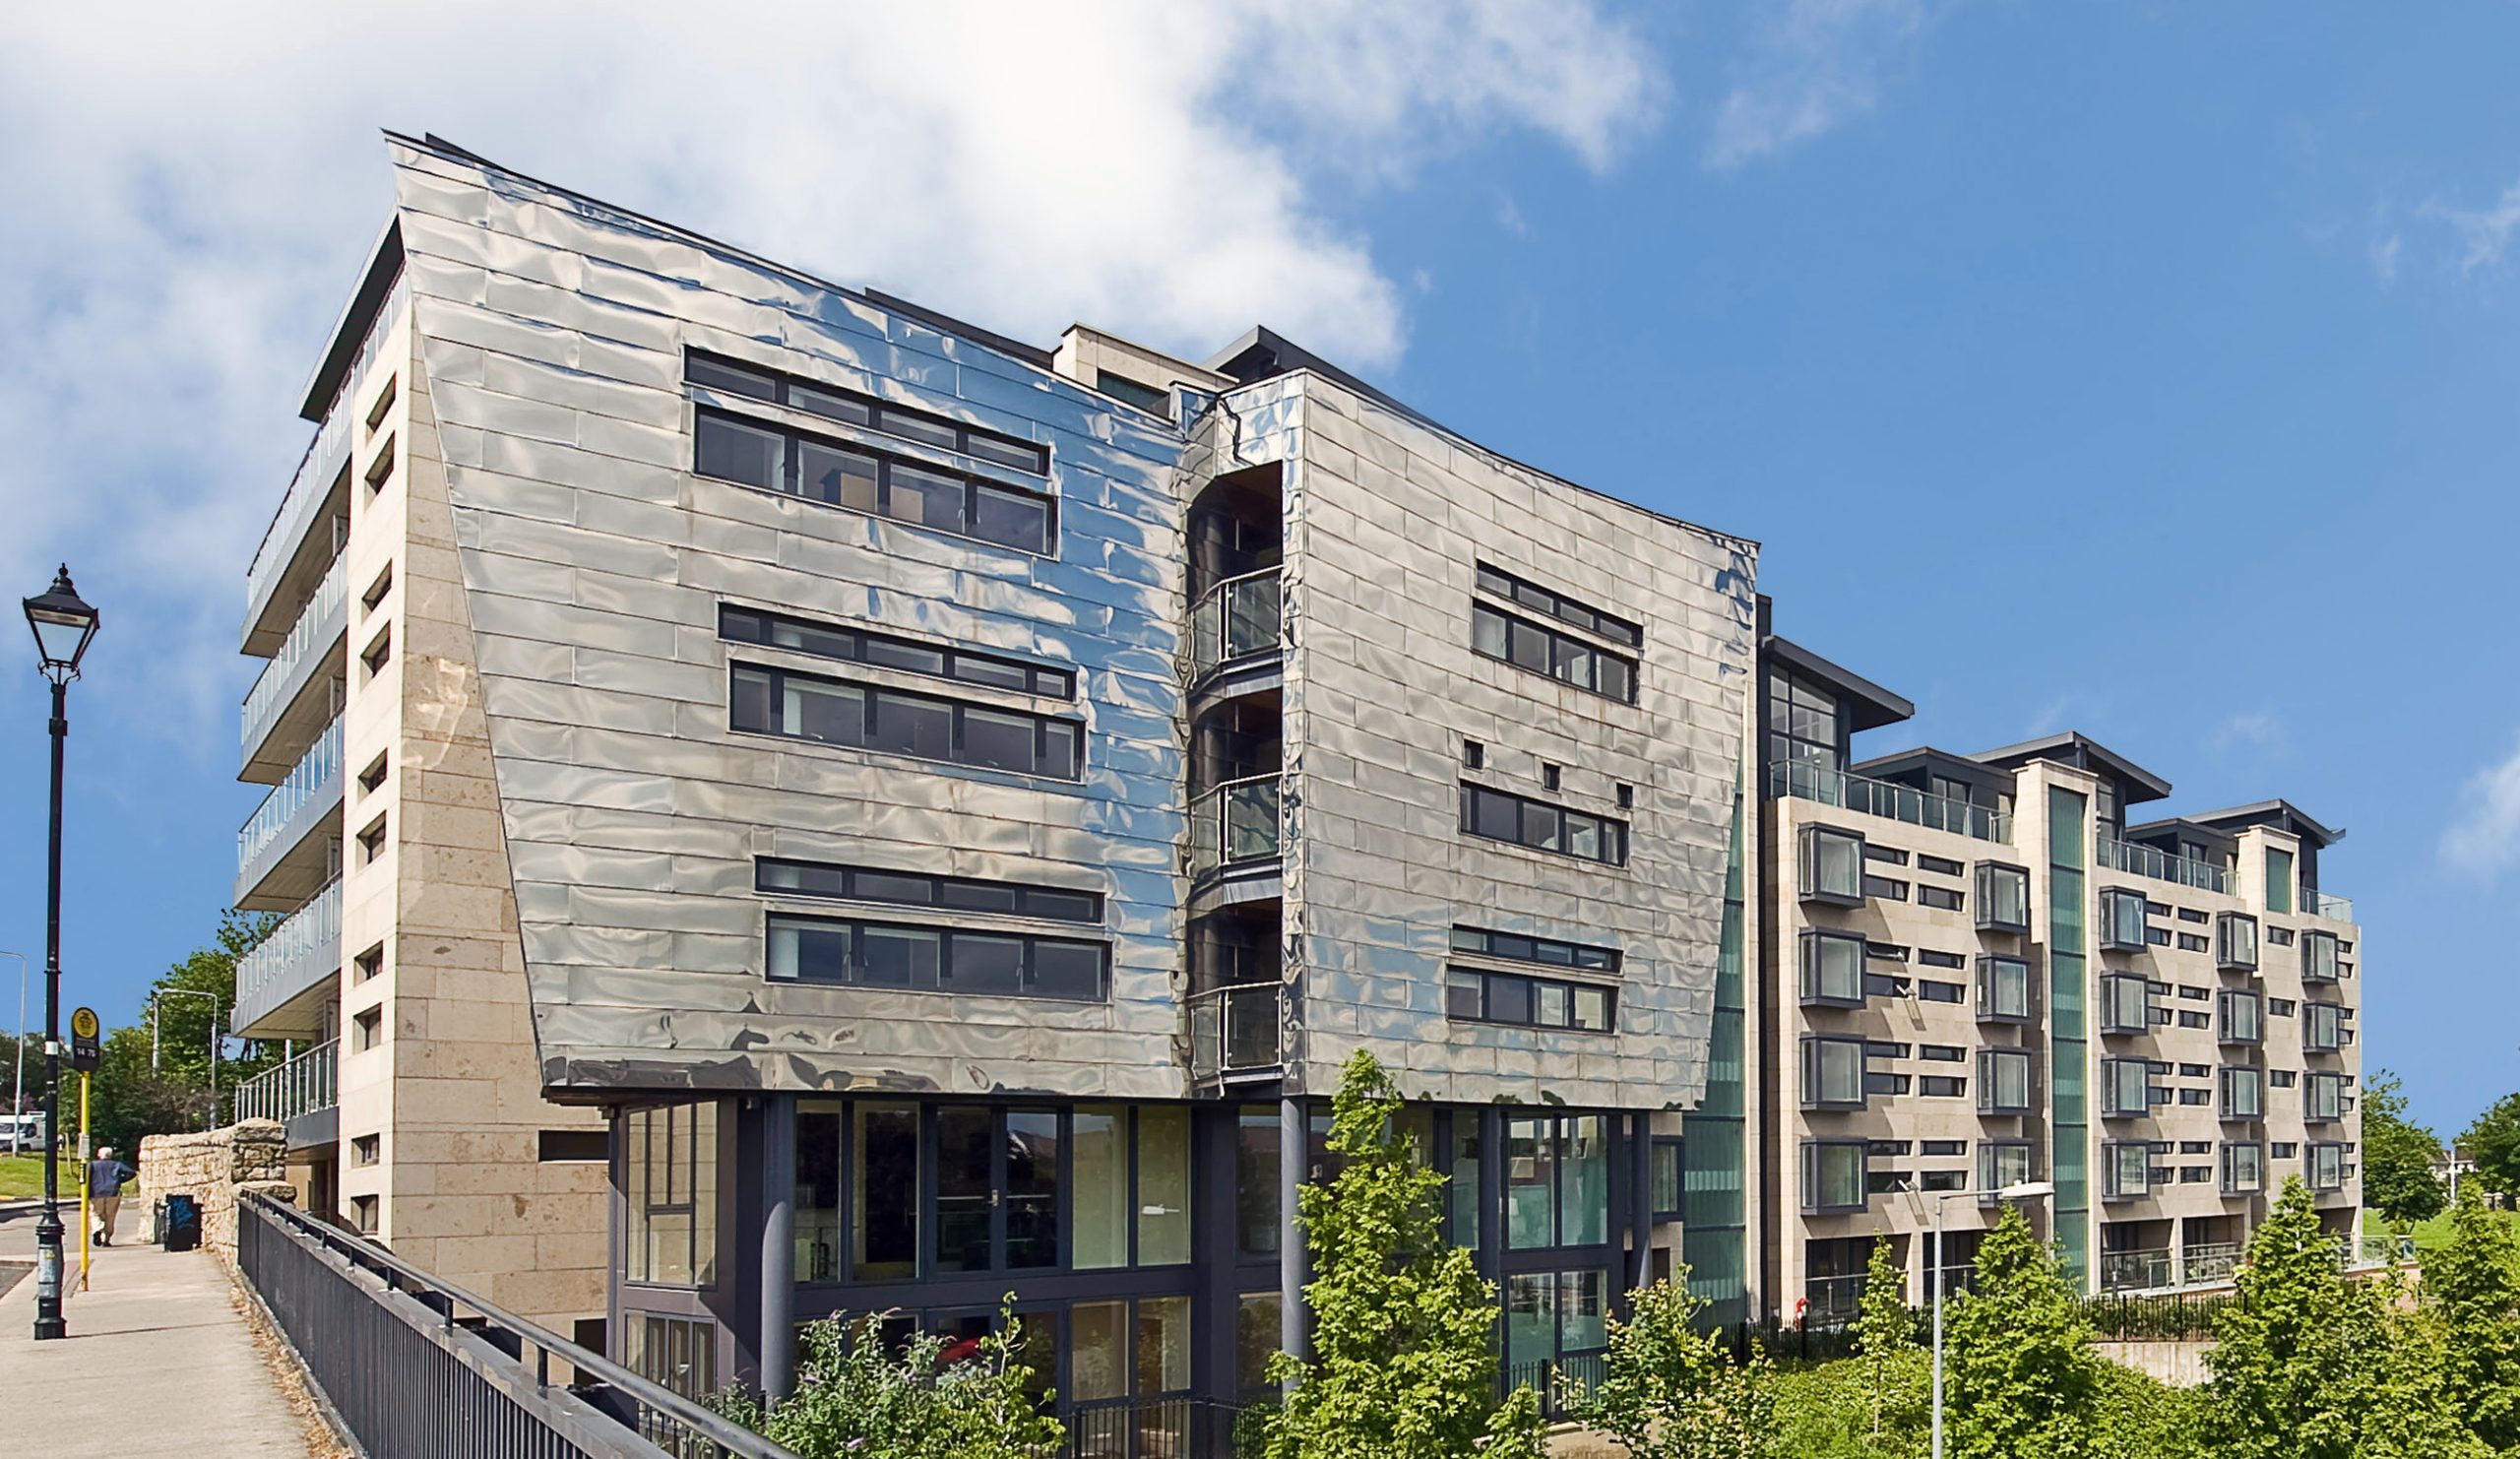 Dundrum View Stainless Steel Facade